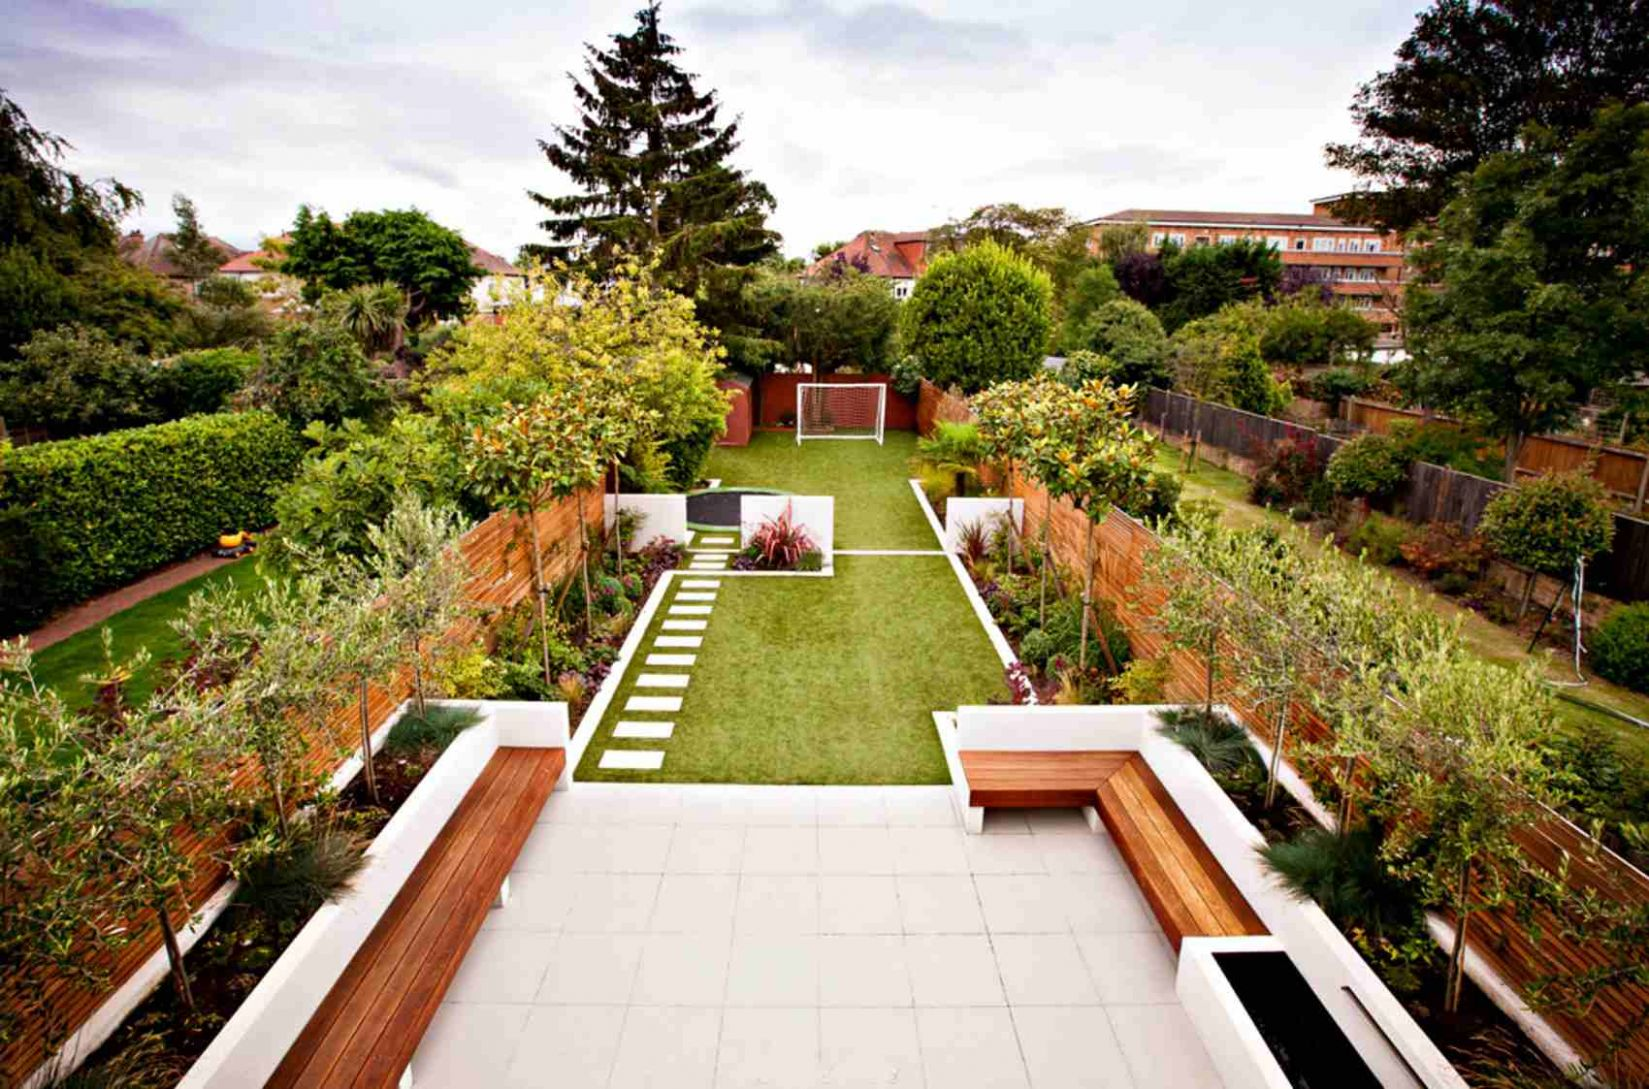 8 Backyard Landscaping Ideas to Inspire You